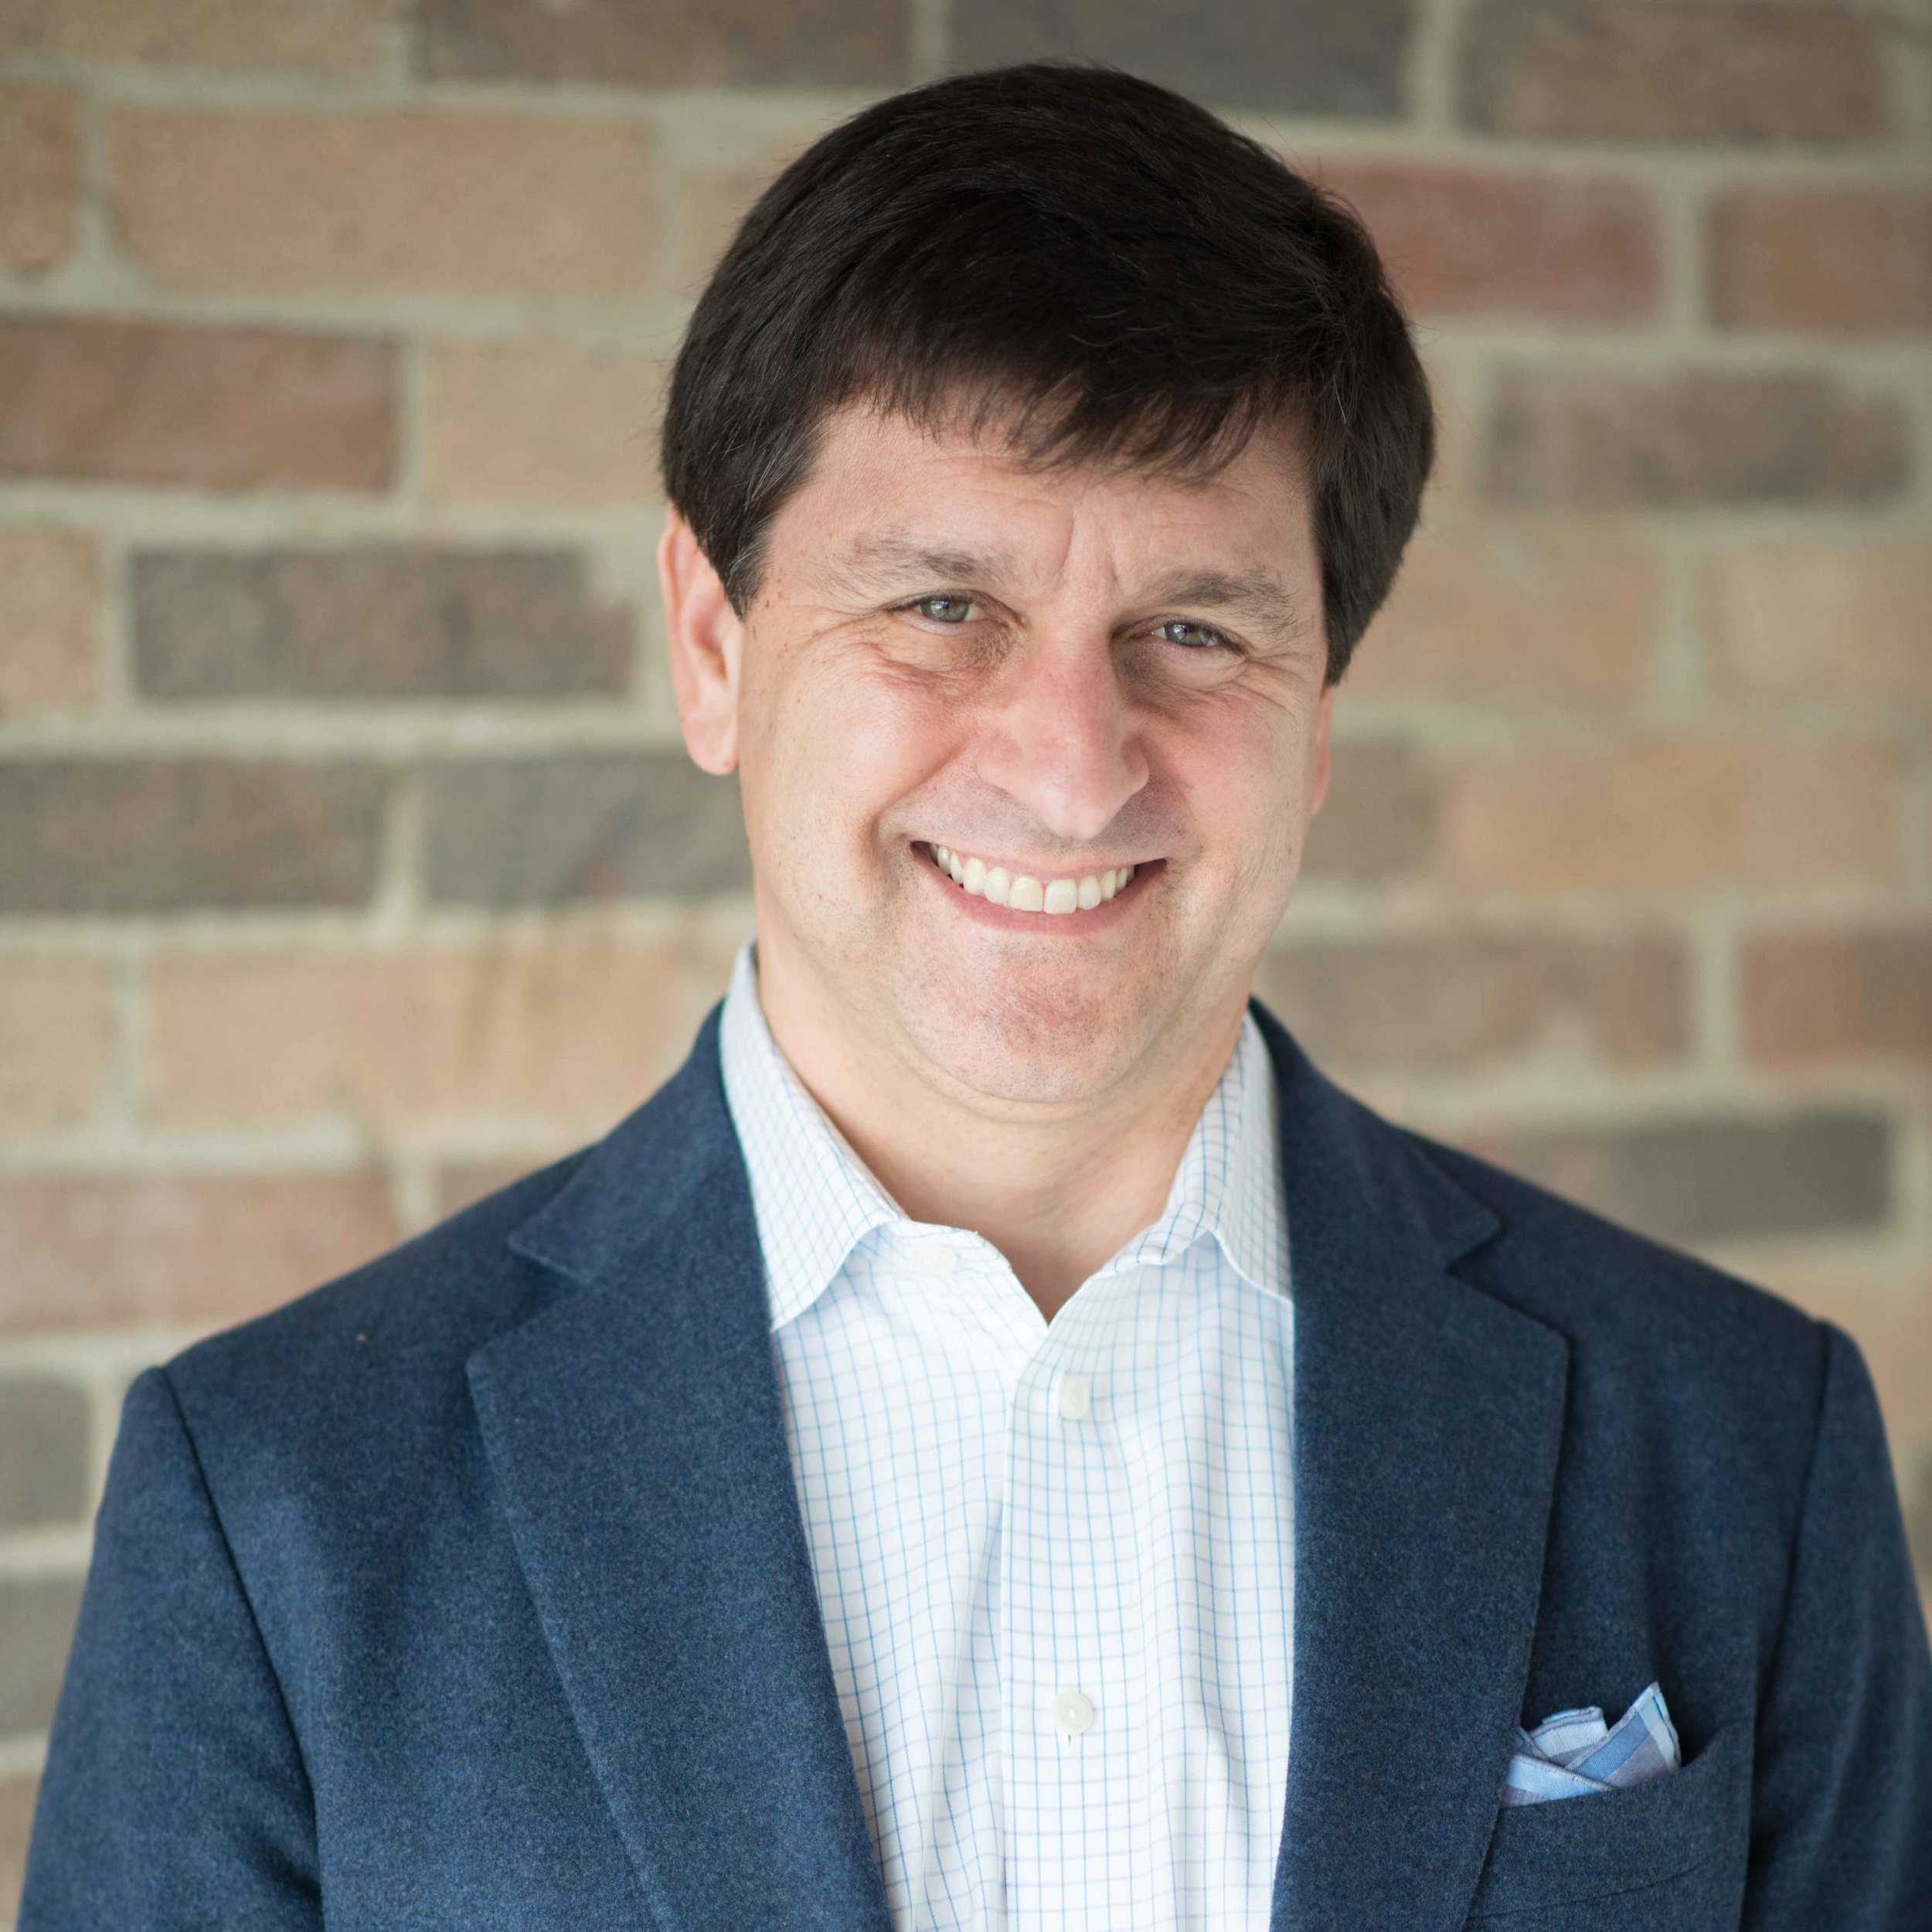 MARK MASINTER  Mark Masinter, who founded  Open Realty Advisors  in 1987, co-leads Open Realty Advisors and Open-Rebees. A graduate of Southern Methodist University, where he earned a Bachelor of Arts degree in Political Science, Mark leads Open Realty's investment endeavors, development activities and new business generation. He was a founding investor in Restoration Hardware and a founding partner of Retail and Restaurant Growth Capital, an SBIC lending fund focused on growing retail and restaurant ventures.